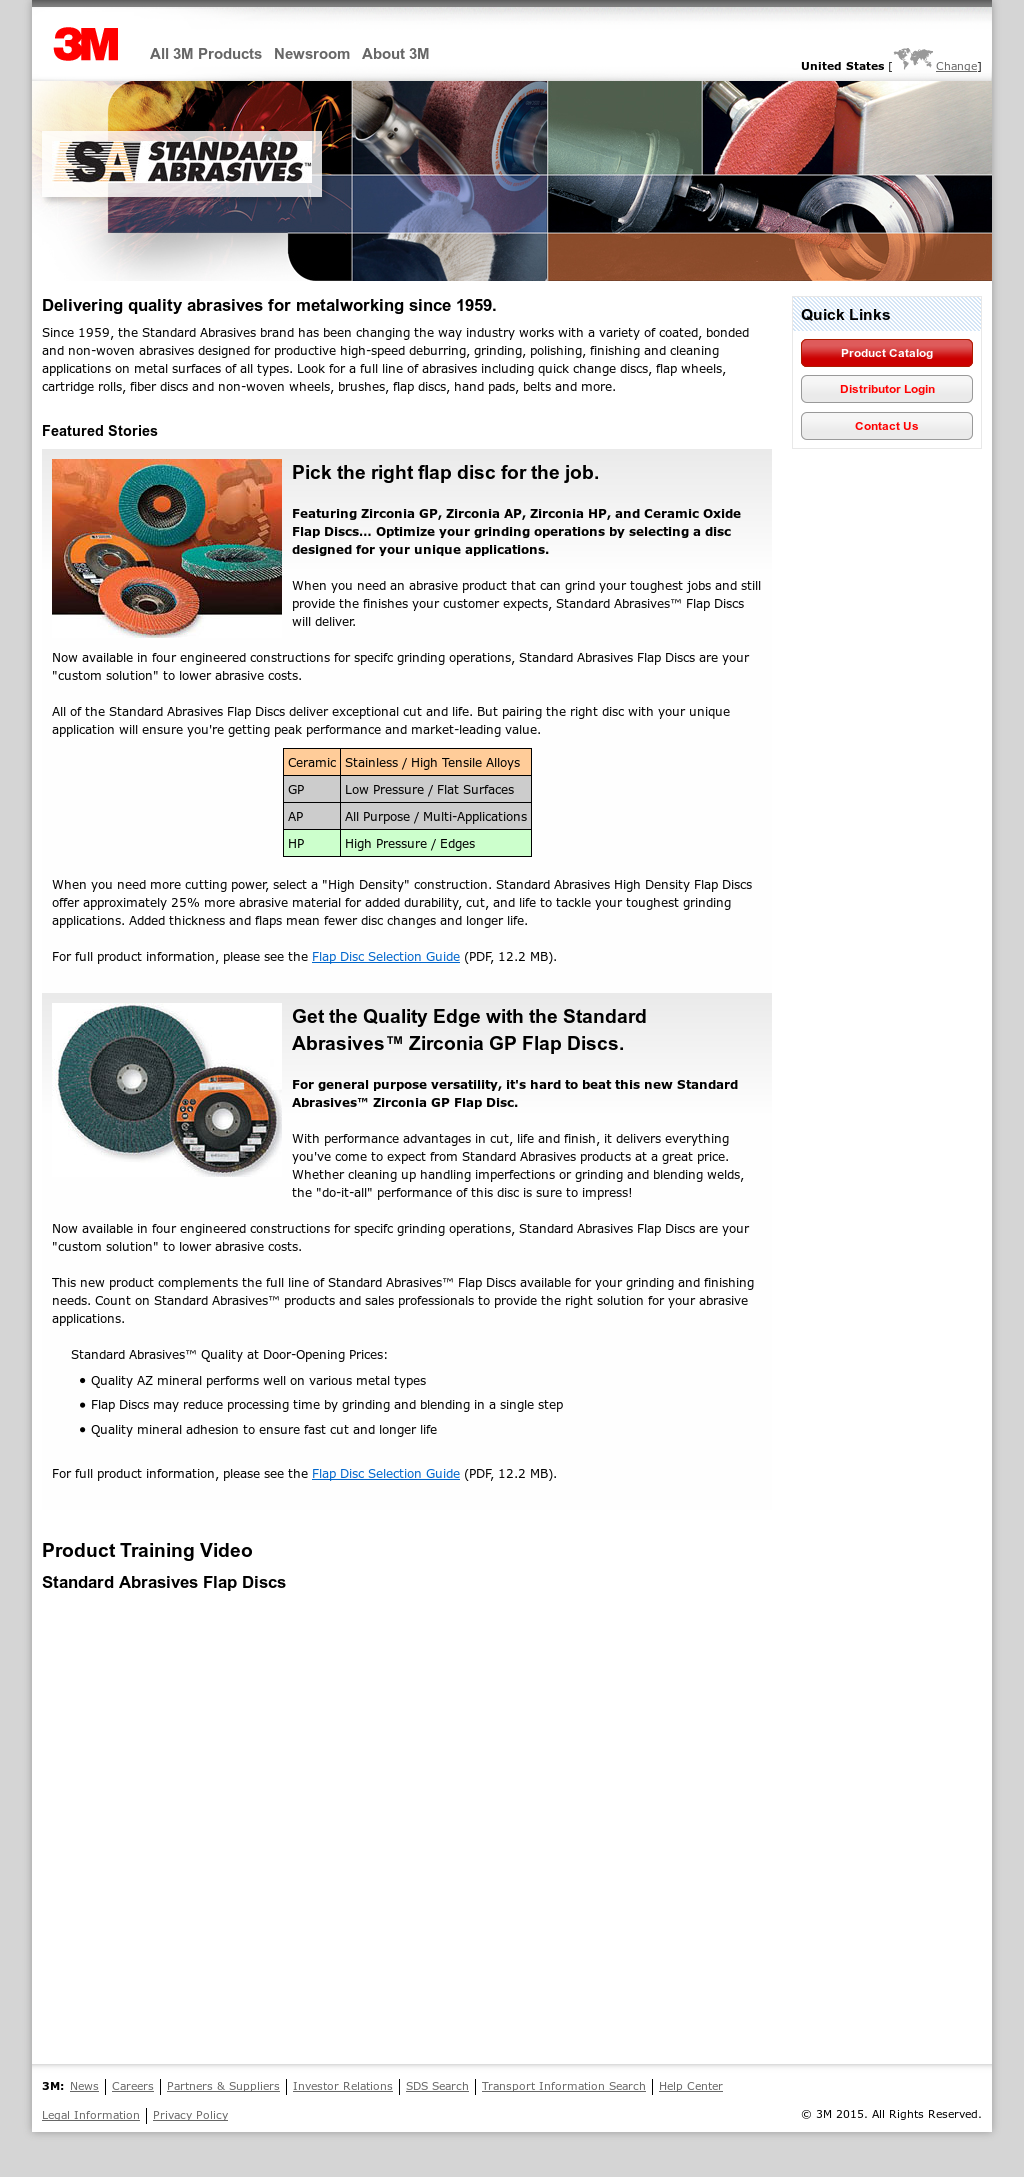 Standard Abrasives Competitors, Revenue and Employees - Owler